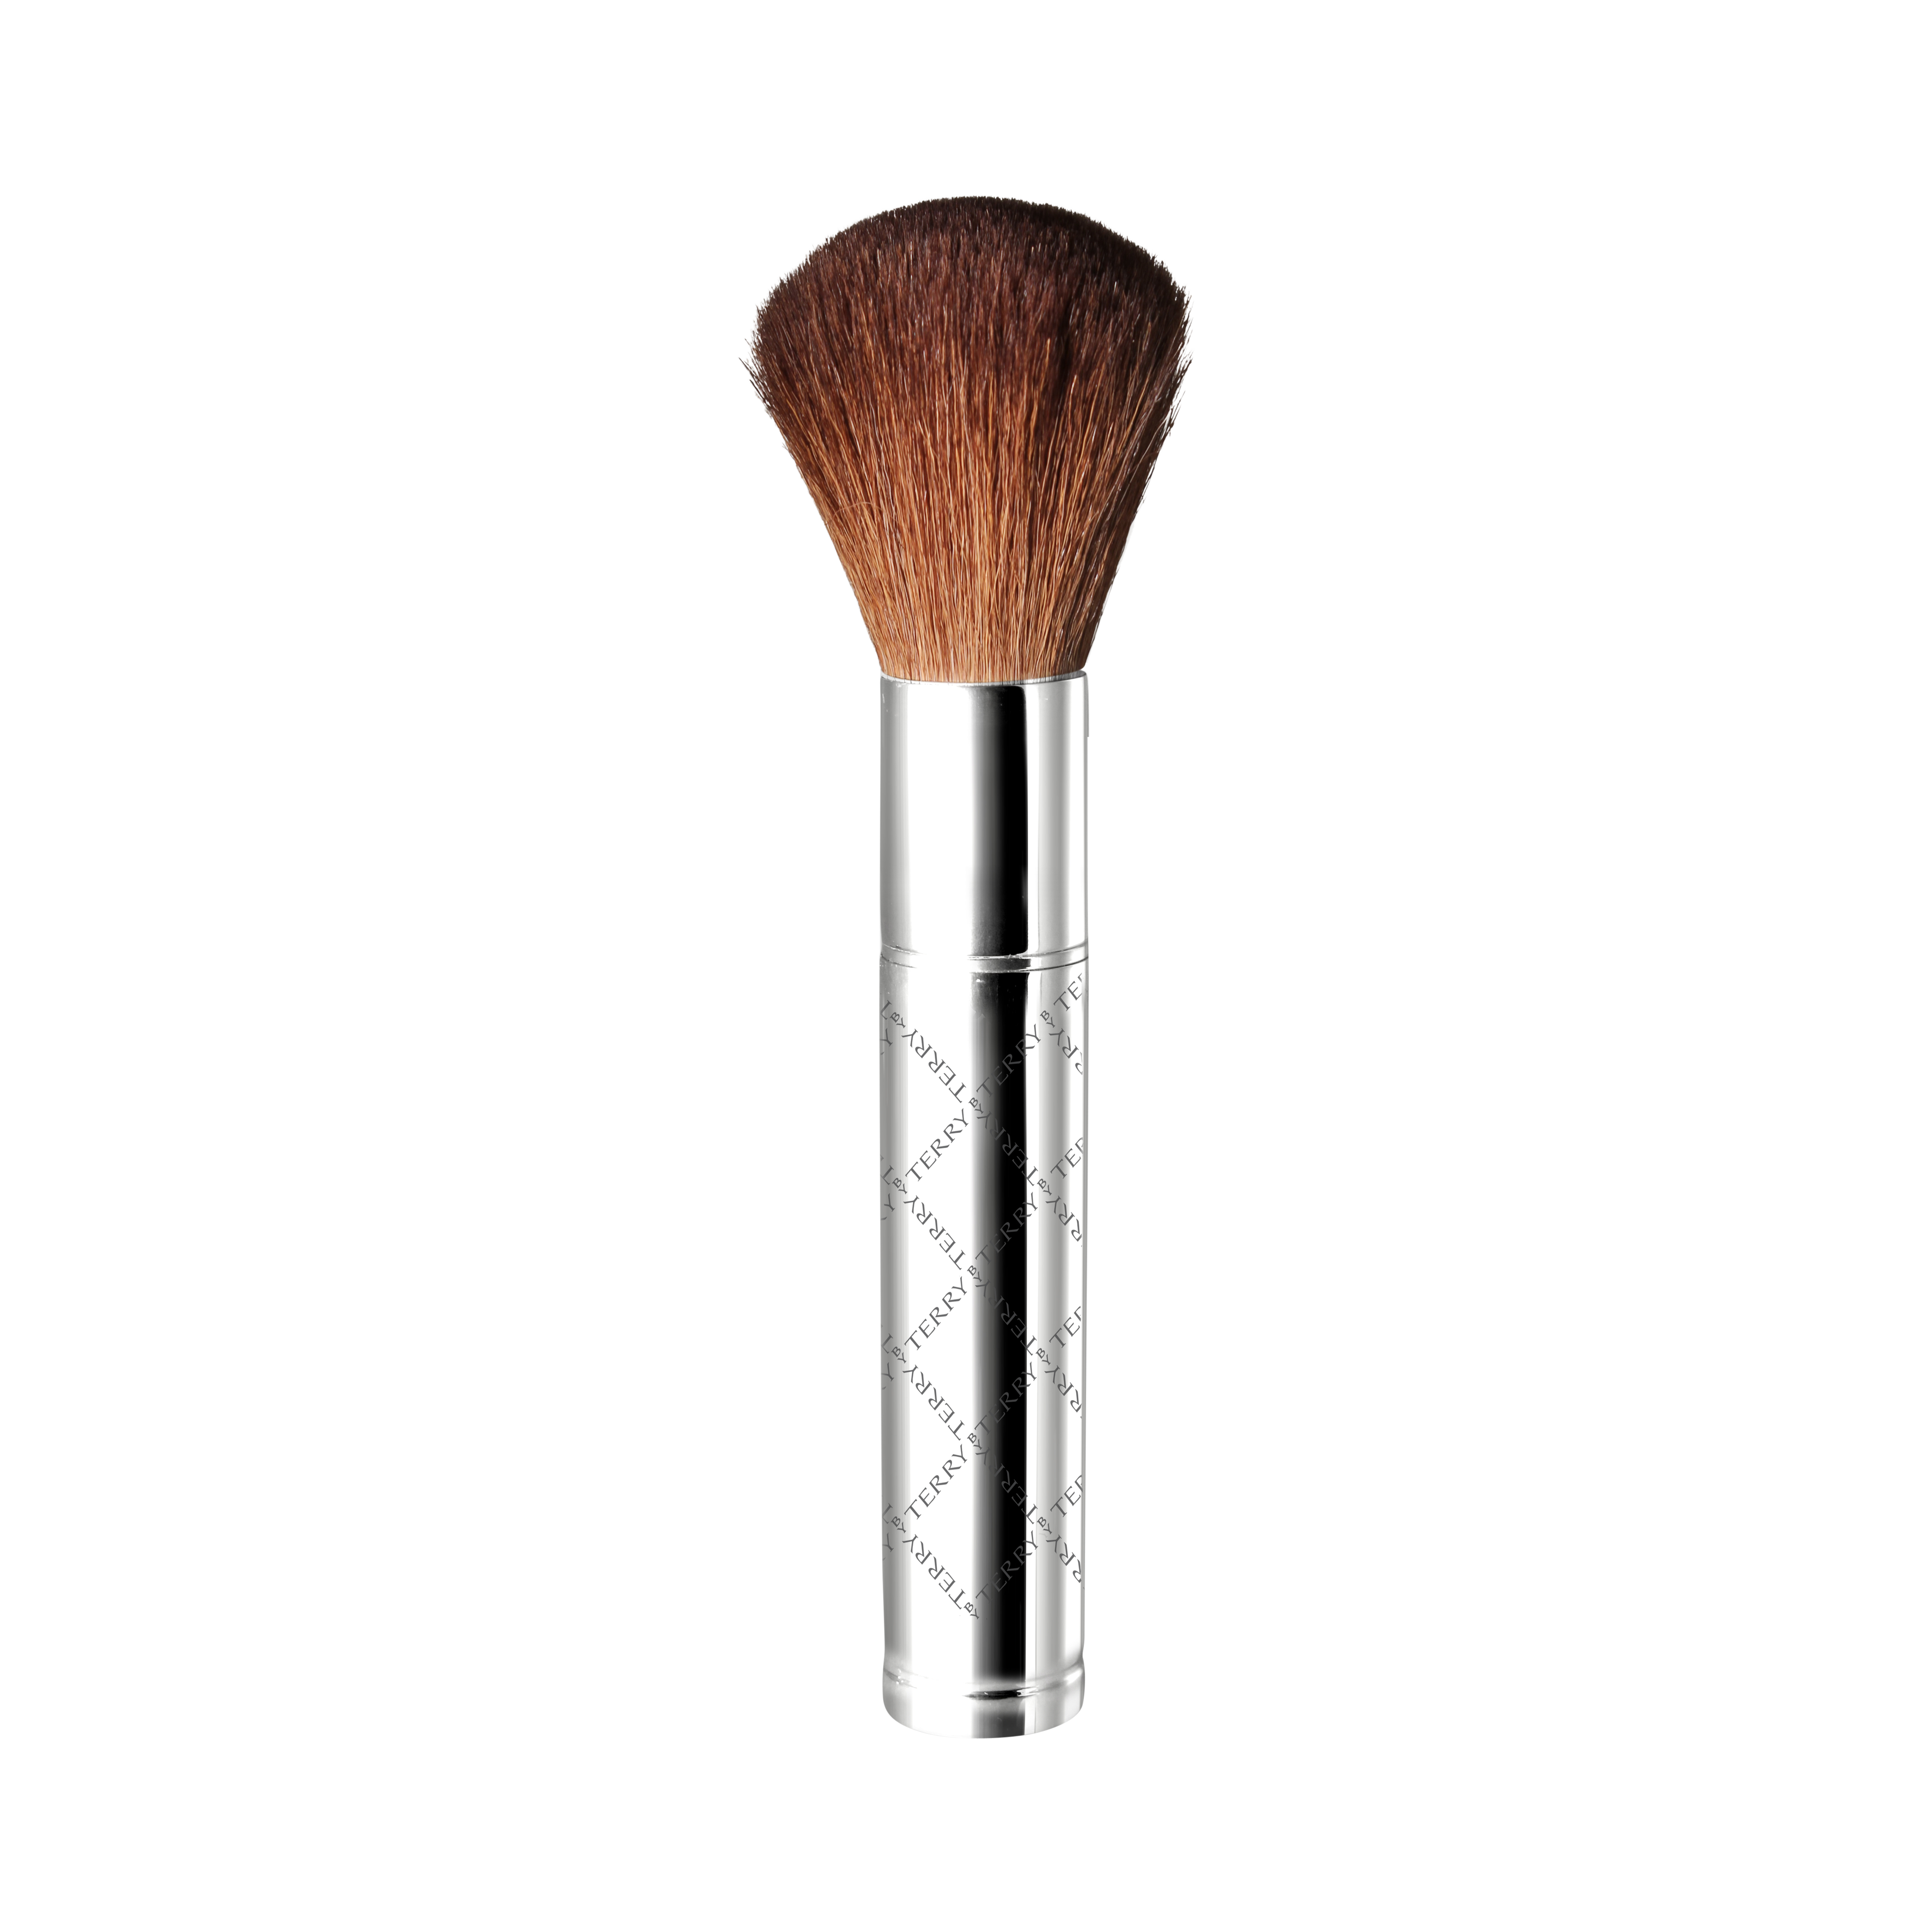 Pinceau Poudre - Dome 1 Brush